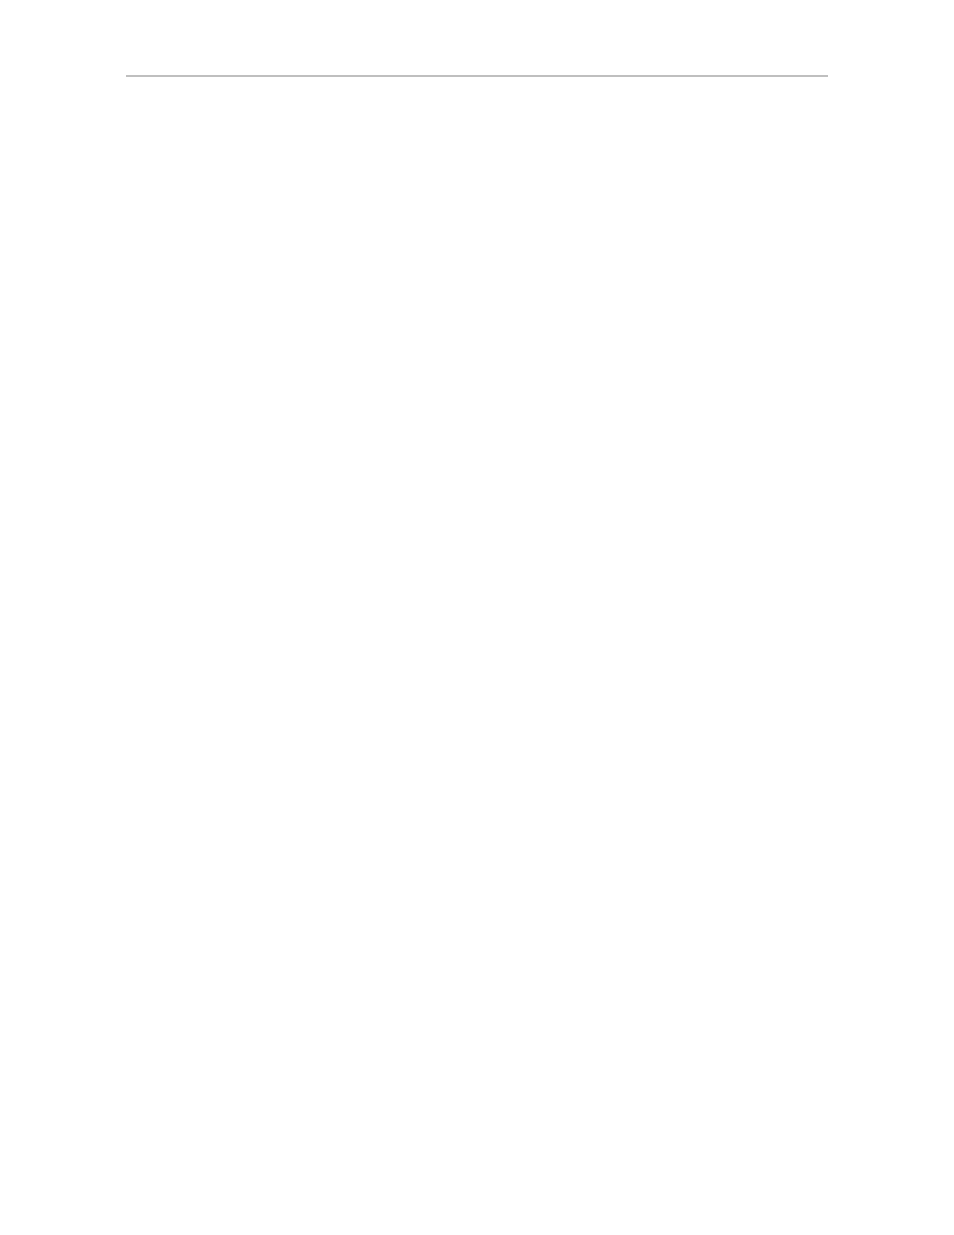 Updating the firmware under vmware, Installing the driver